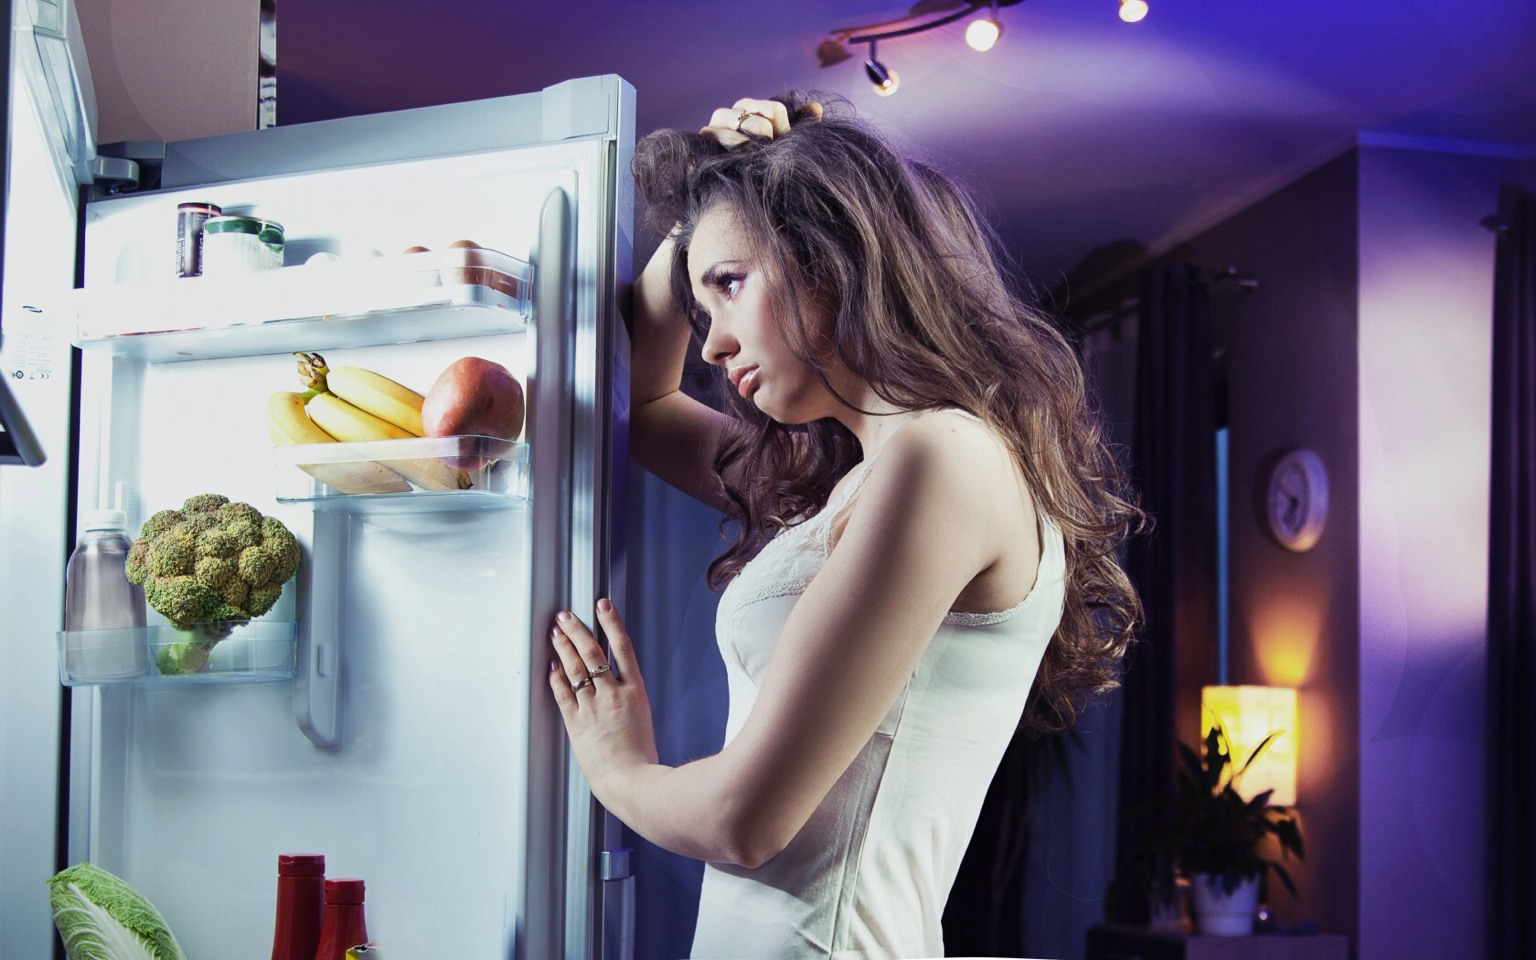 Avoiding midnight snacking: Your body burns calories at the same rate no matter what time of day it is. It's far better to eat a light snack than to go to bed hungry!